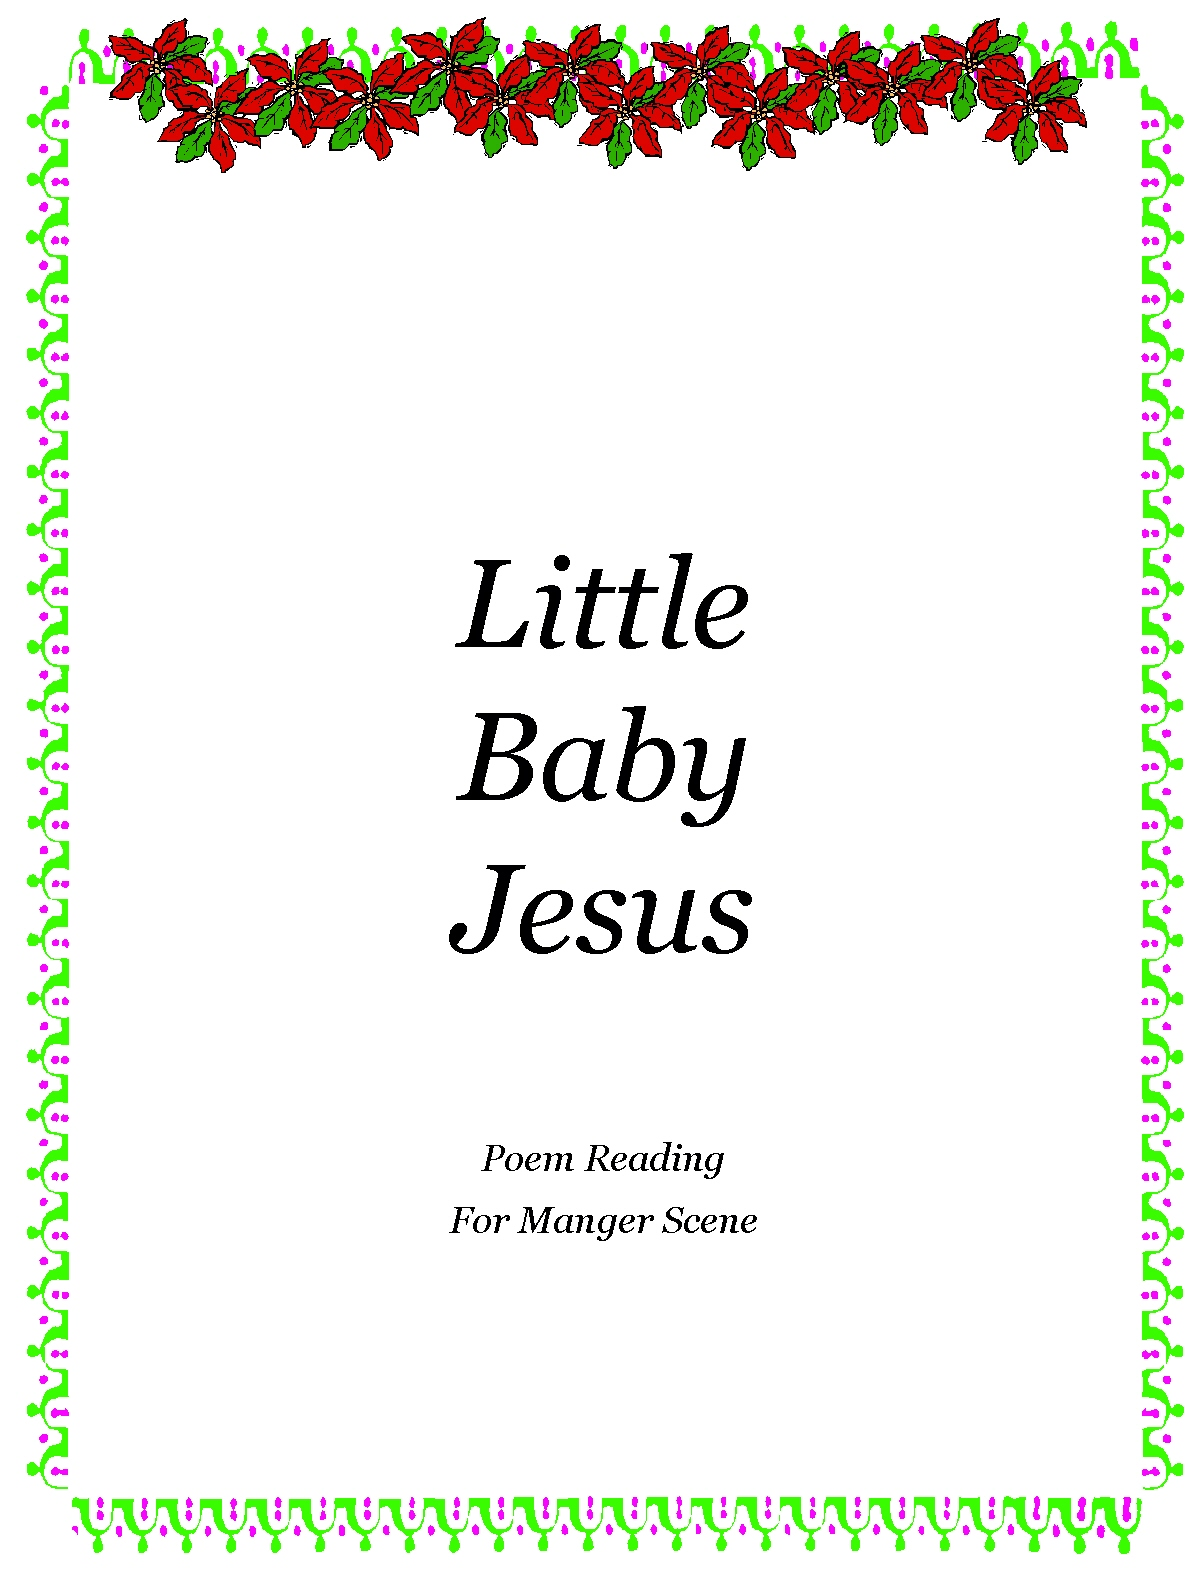 Christmas Poems For Church Programs - Song or poem for manger scene program susan y nikitenko november 26th 2012